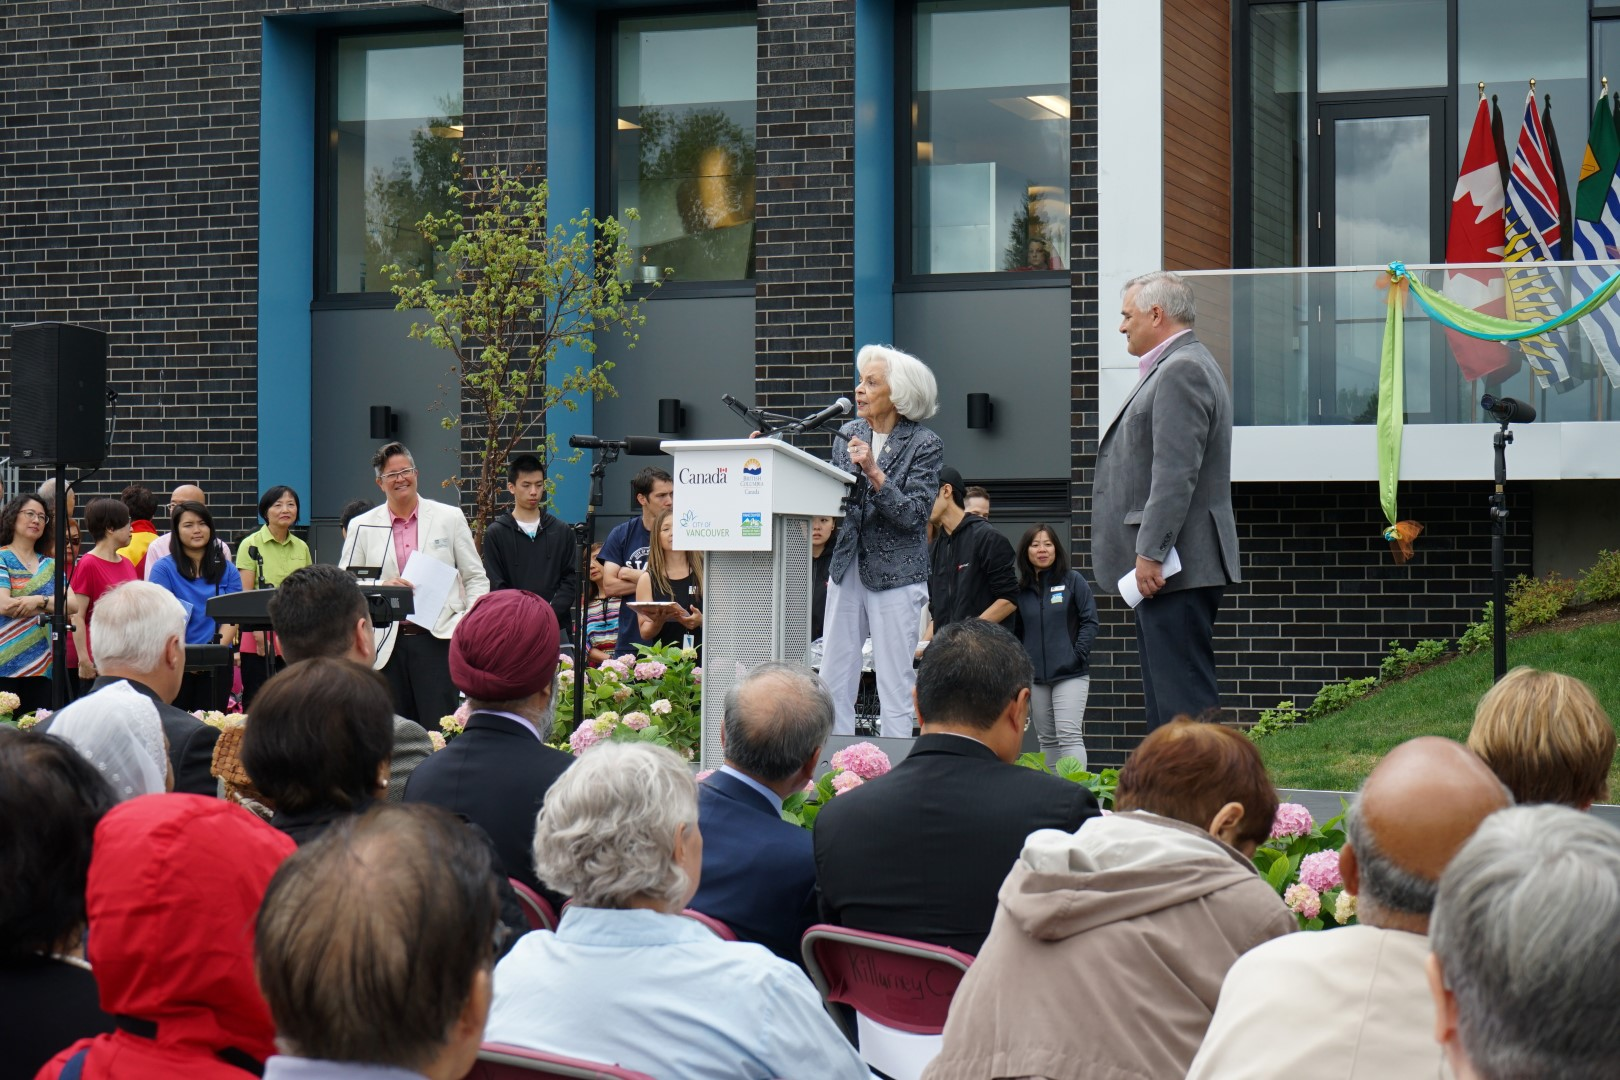 Lorna Gibbs speaking at the Grand Opening, June 28, at Killarney Community Centre. Photo: Willie Yeung